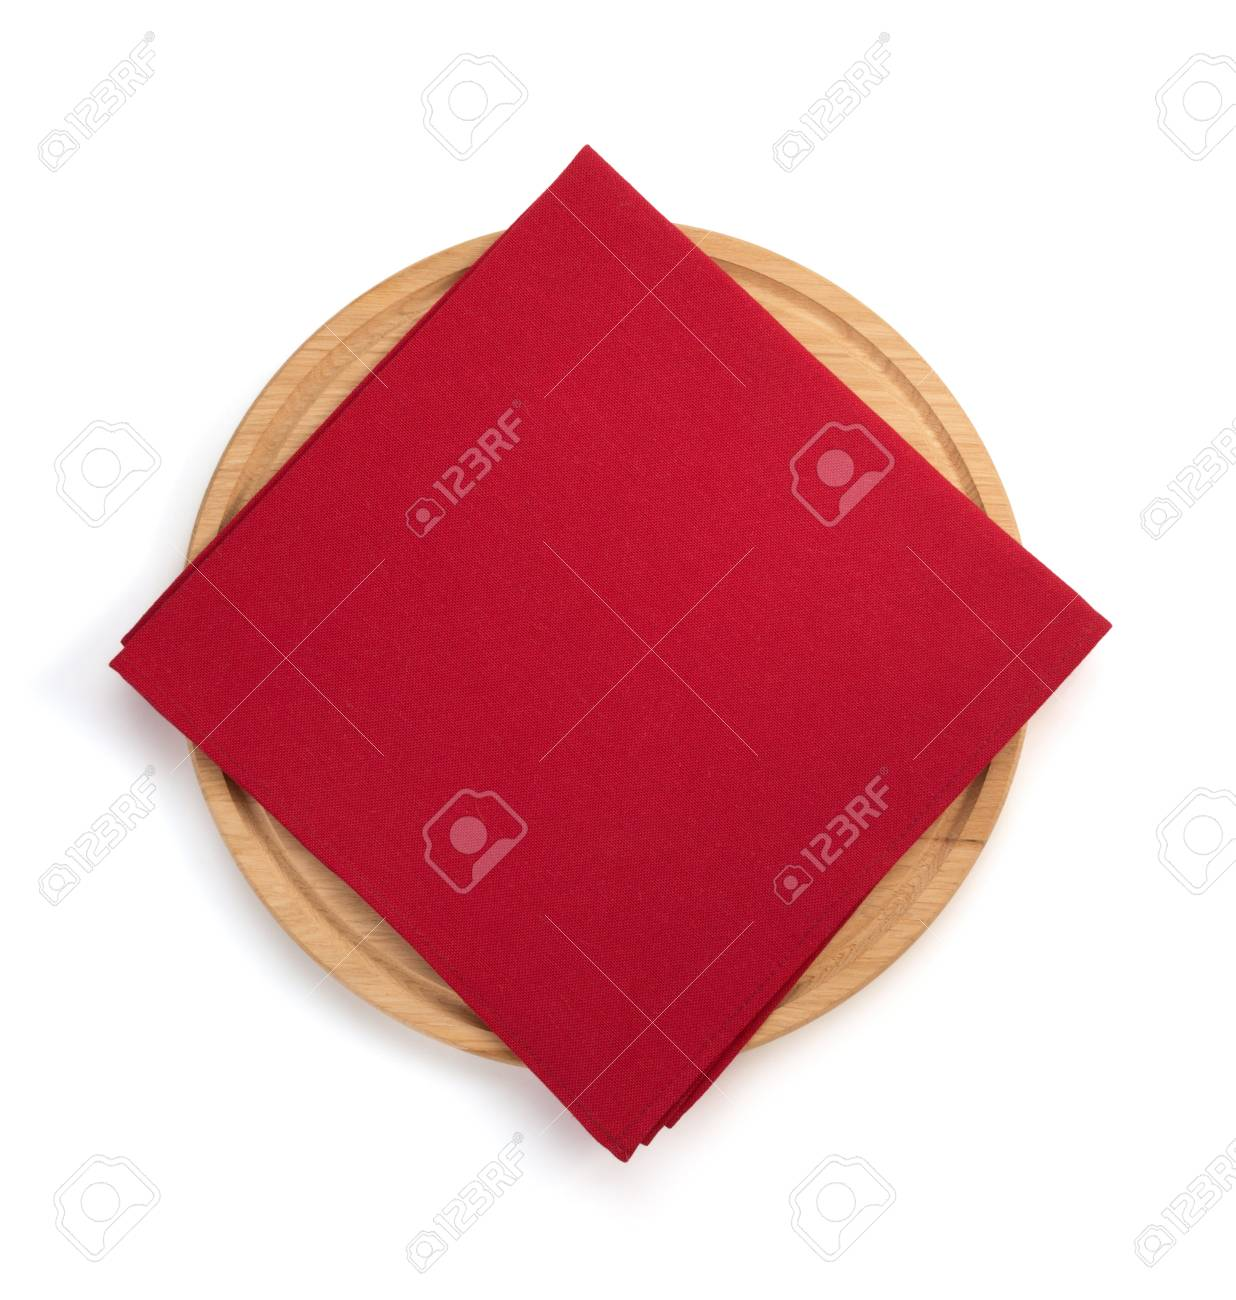 napkin at cutting board on white background - 43291054